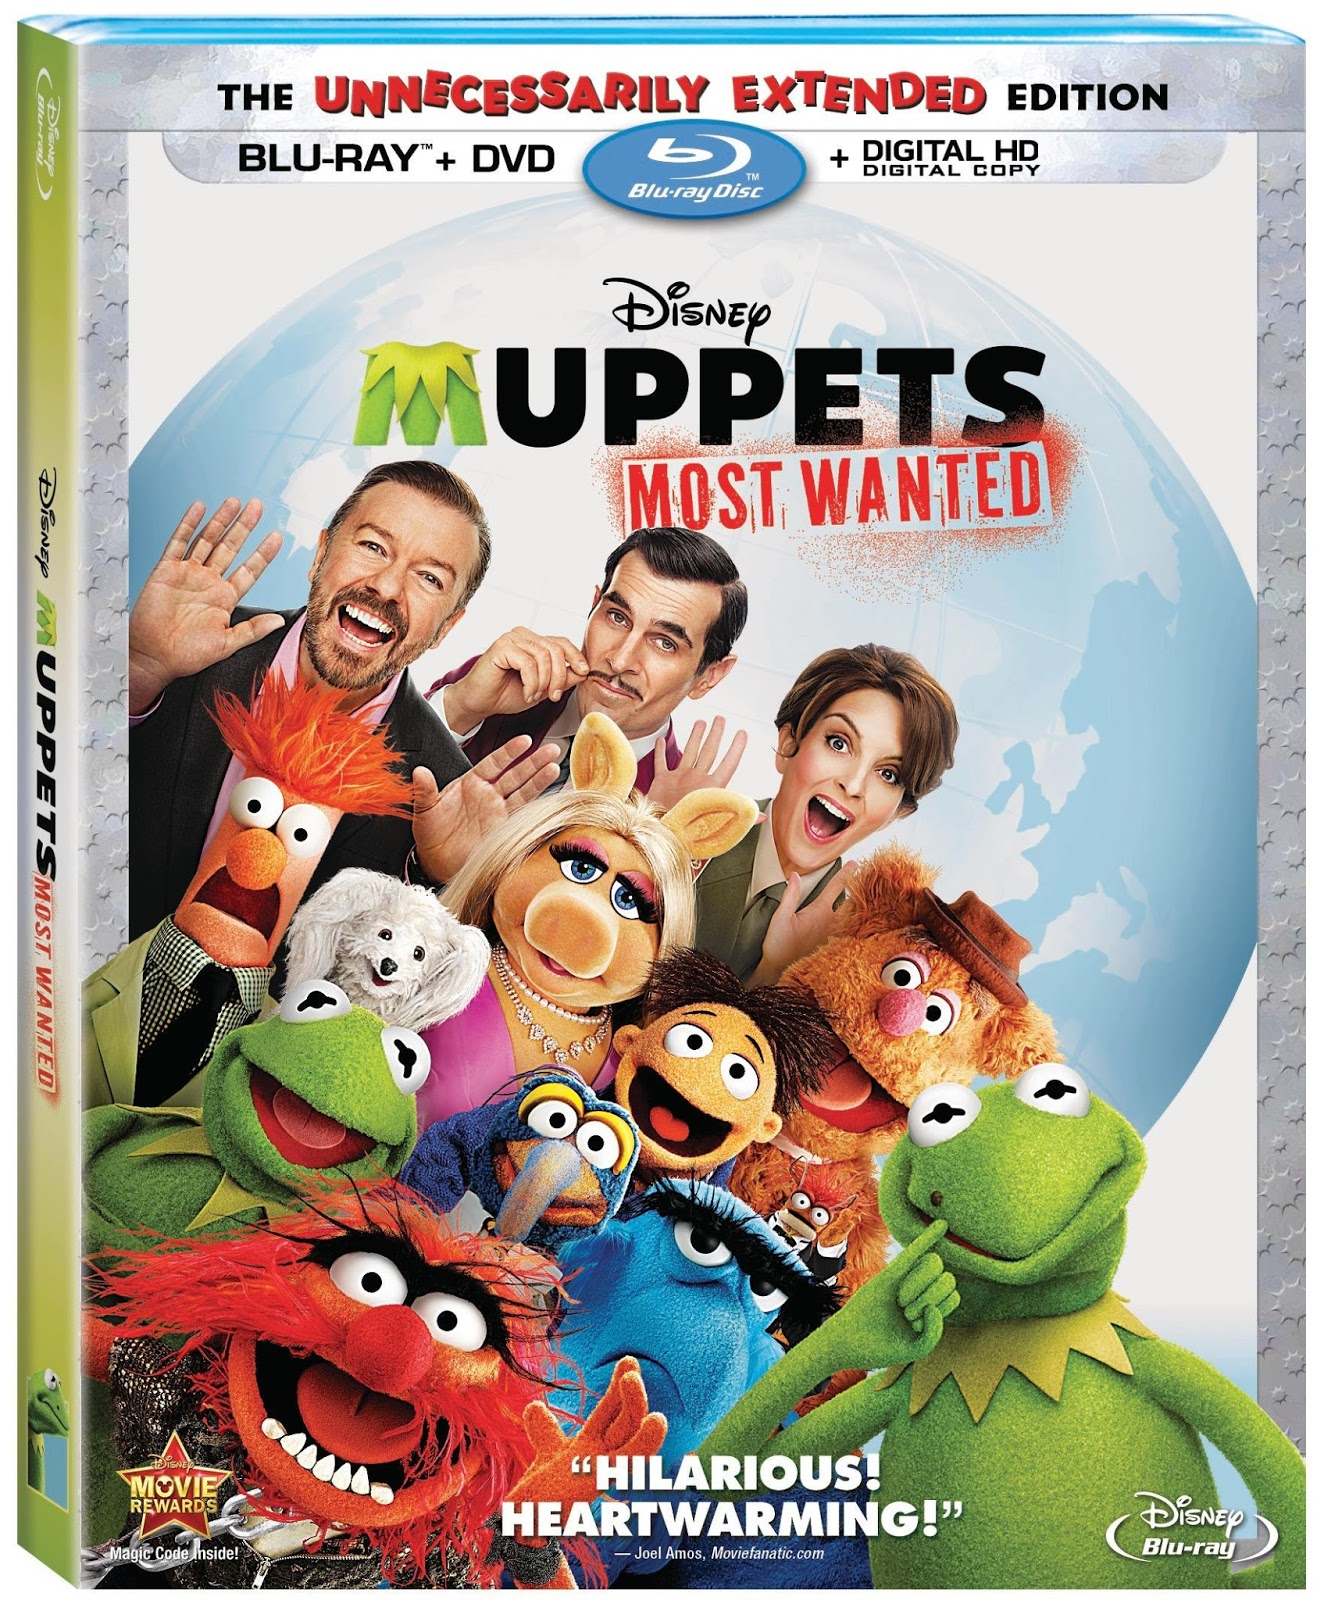 Disney's MUPPETS MOST WANTED on Blu-ray, DVD and Disney Movies Anywhere